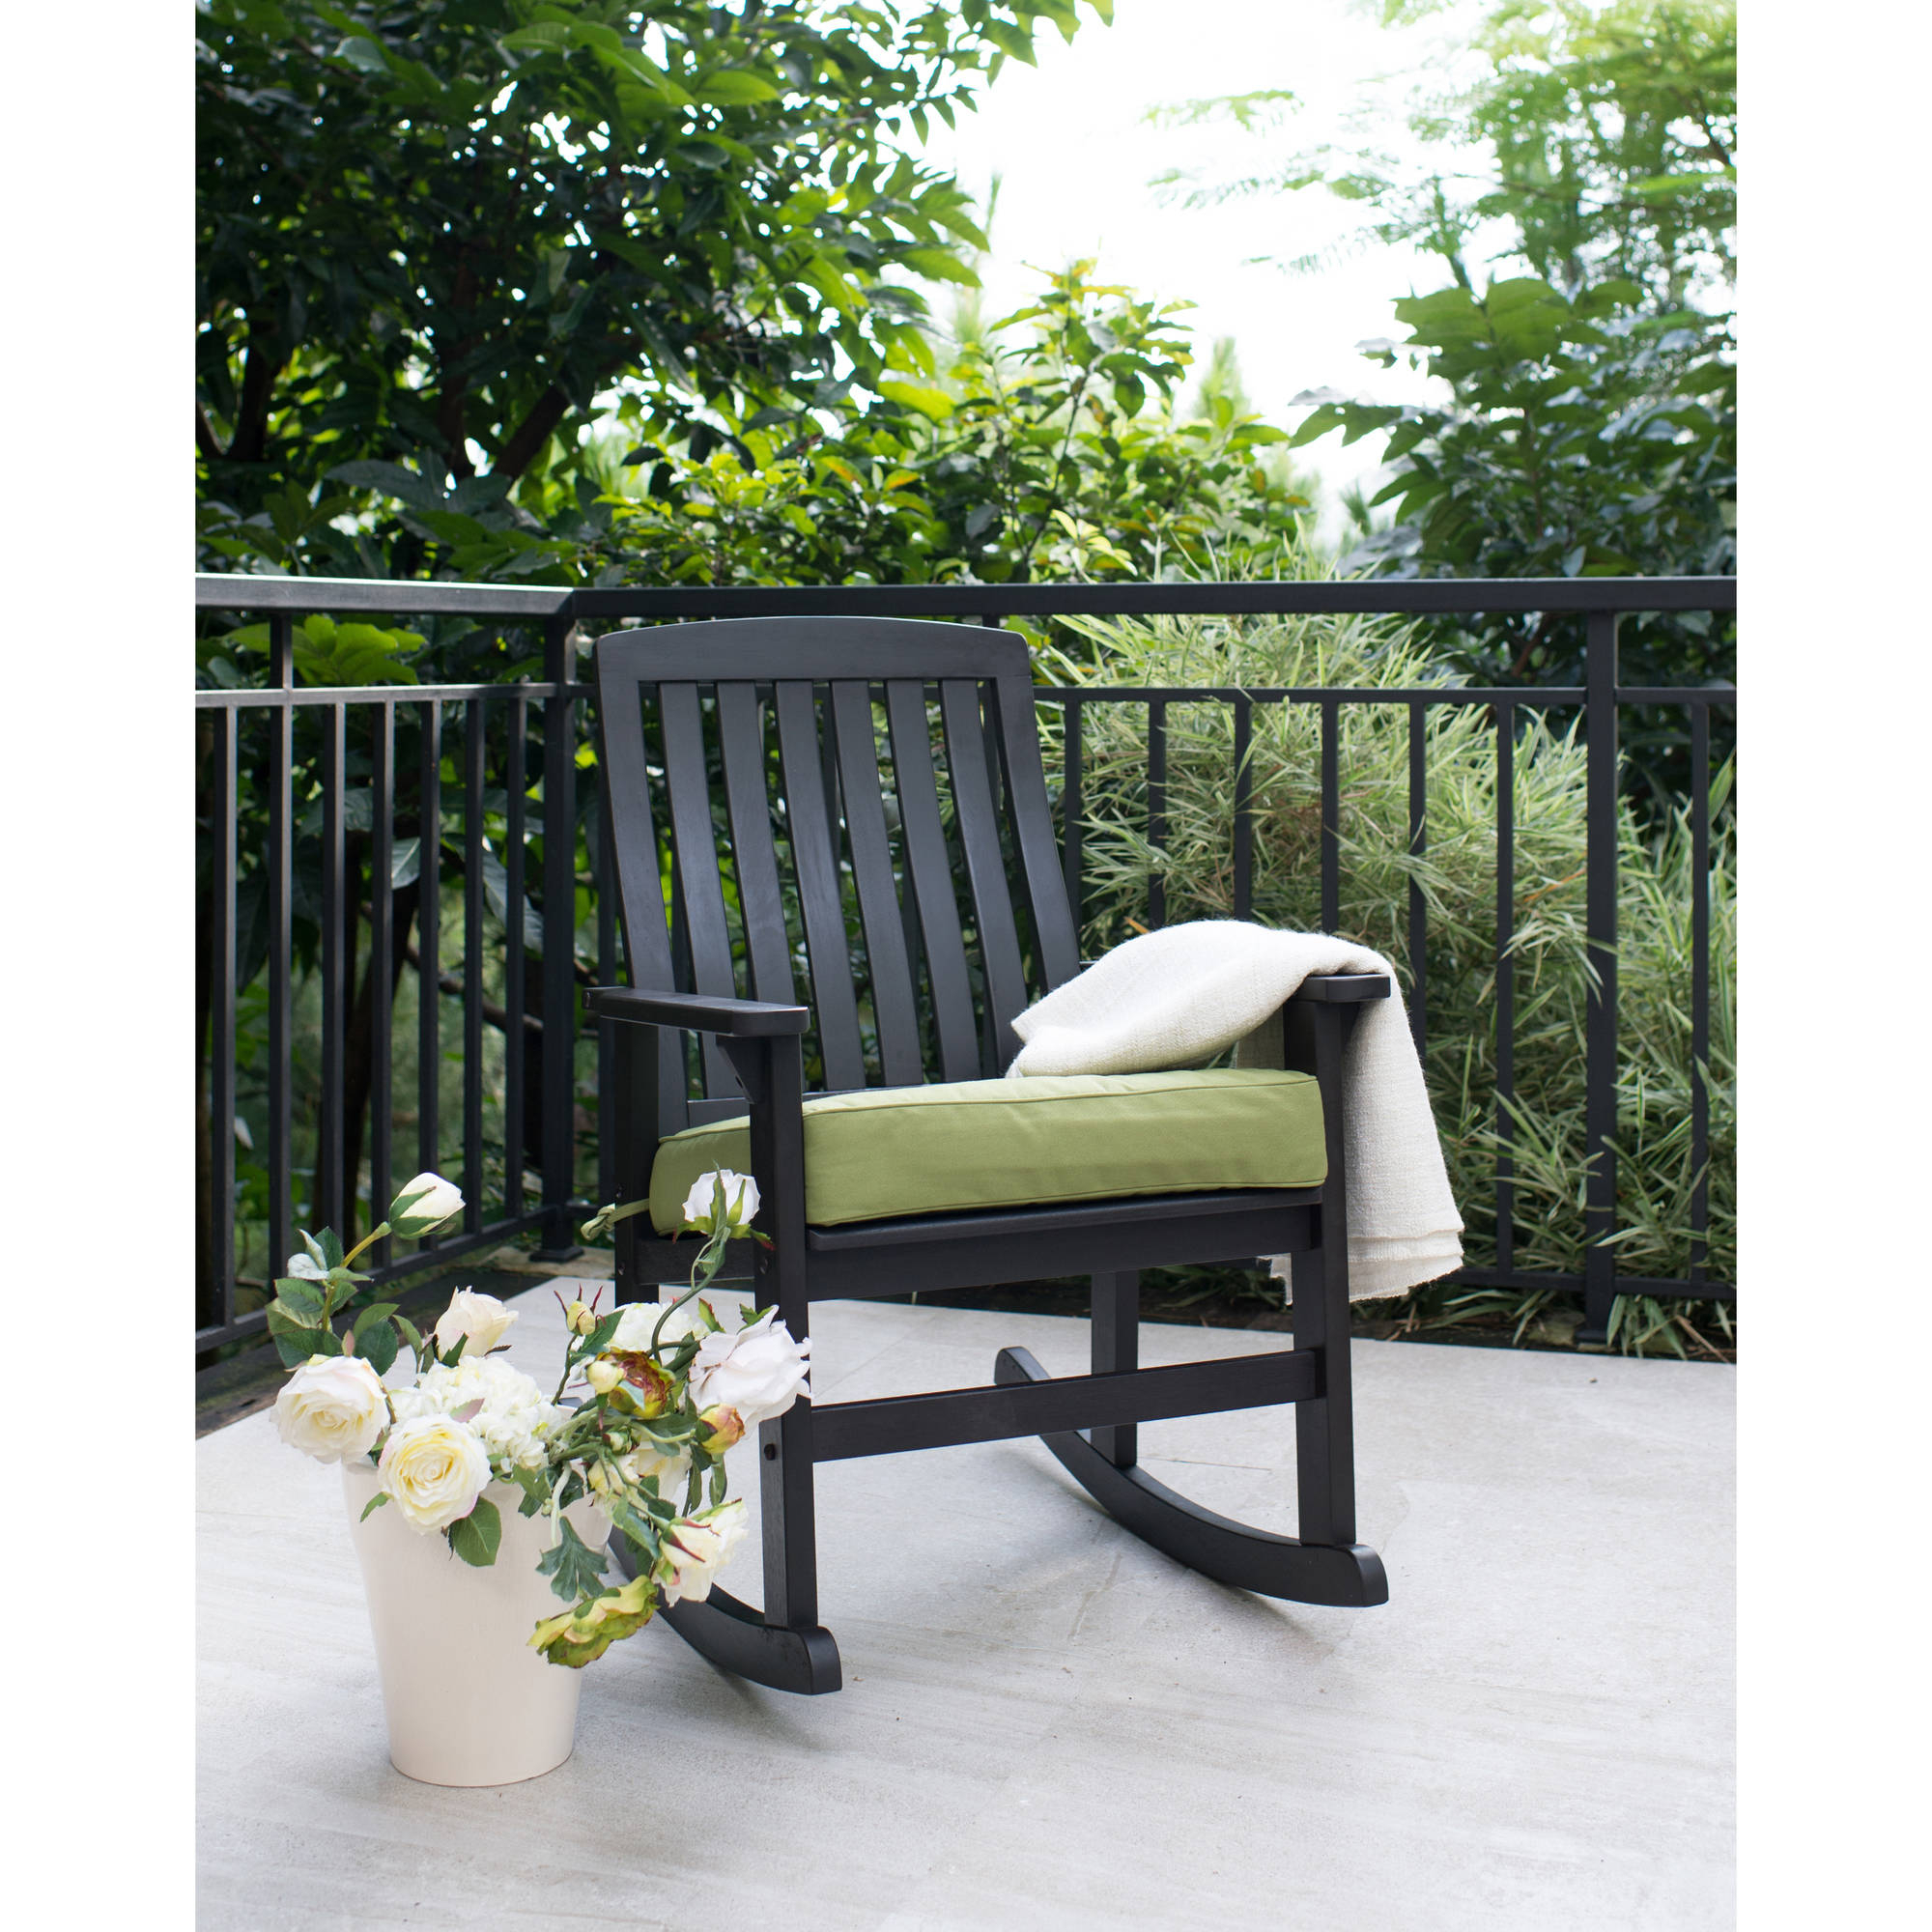 Better Homes & Gardens Delahey Wood Porch Rocking Chair In Wooden Rocking Chairs With Fabric Upholstered Cushions, White (View 5 of 20)